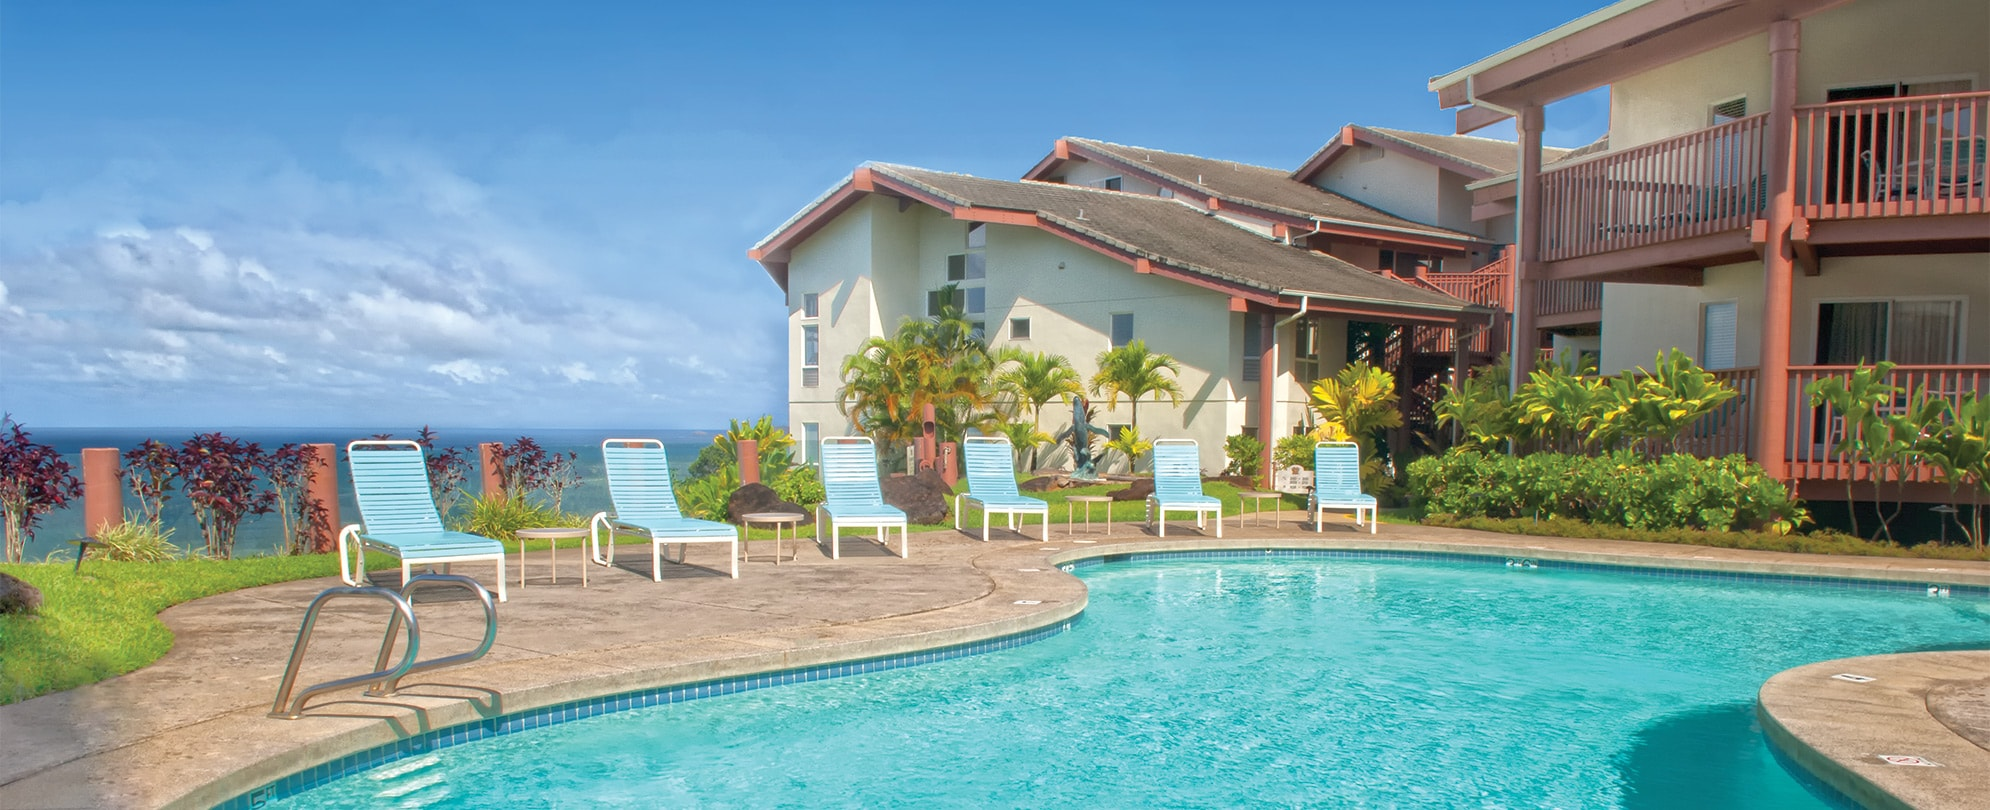 Timeshares in Princeville Hawaii  Wyndham Shearwater